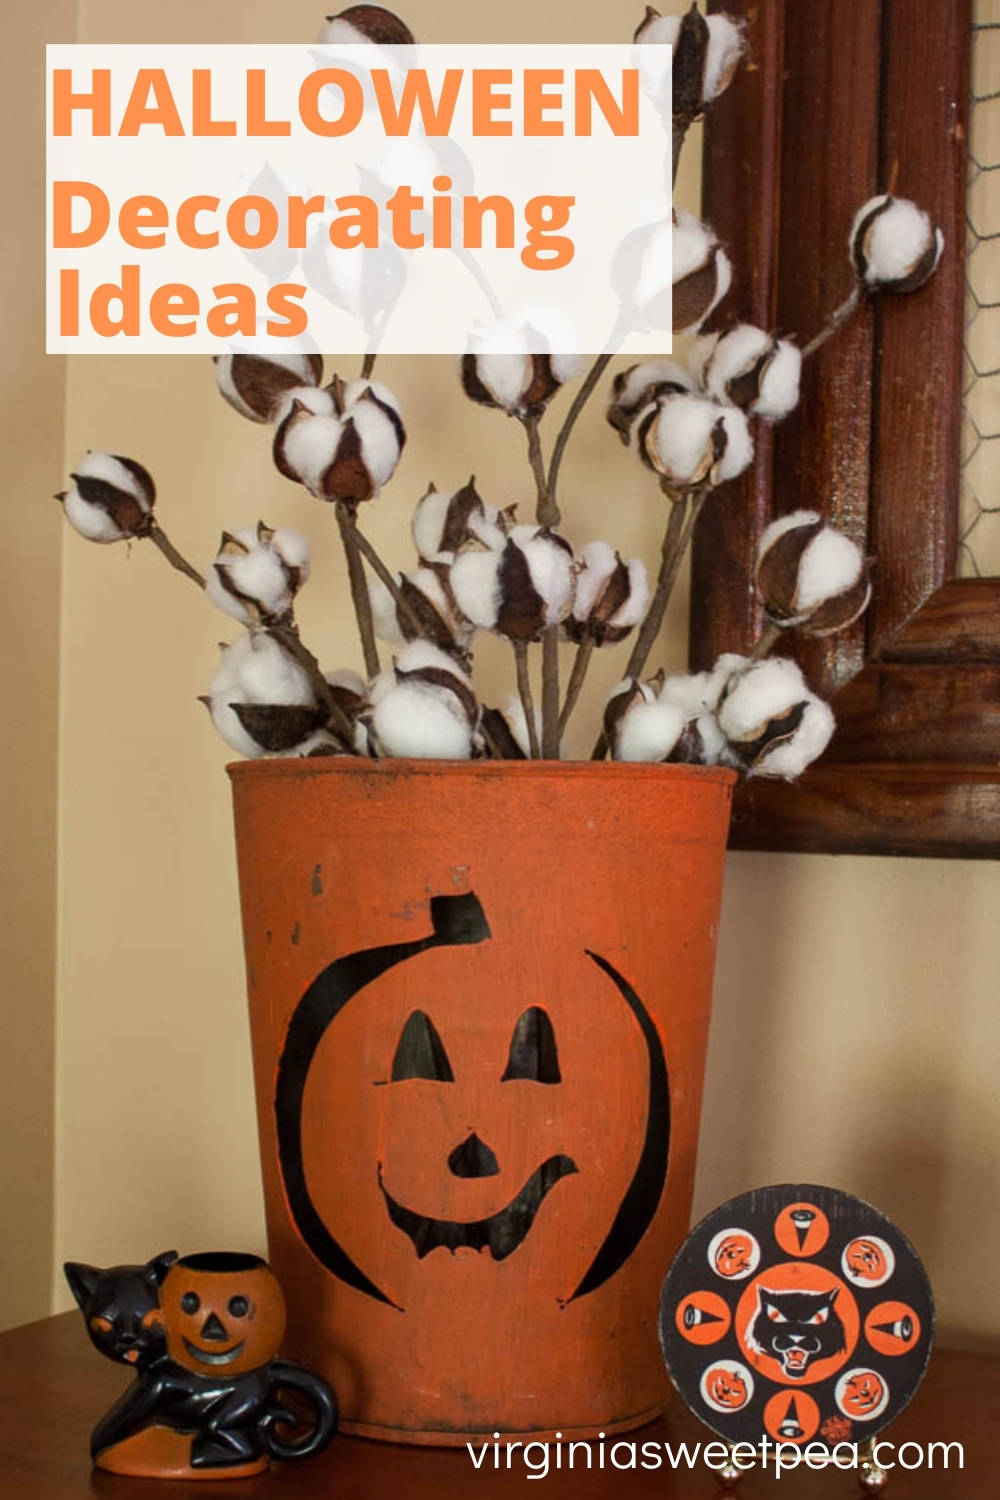 Halloween Decorating Ideas - Get ideas for decorating your home for Halloween.  #halloween #halloweendecor #halloweendecorating via @spaula